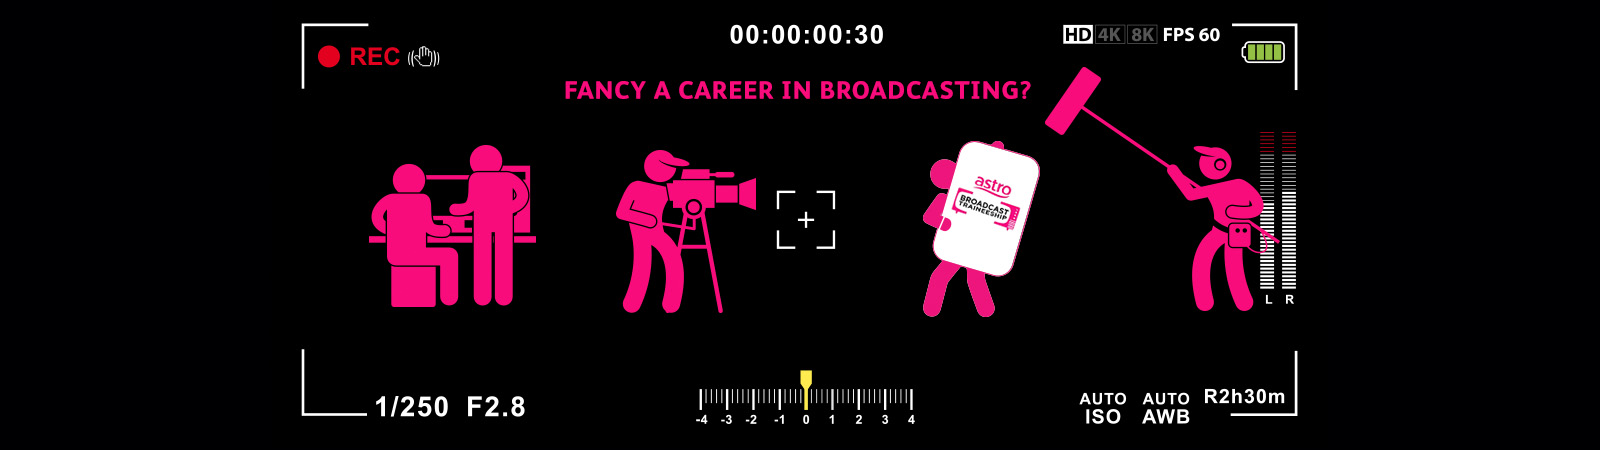 ASTRO BROADCAST TRAINEESHIP 2019…is now open!